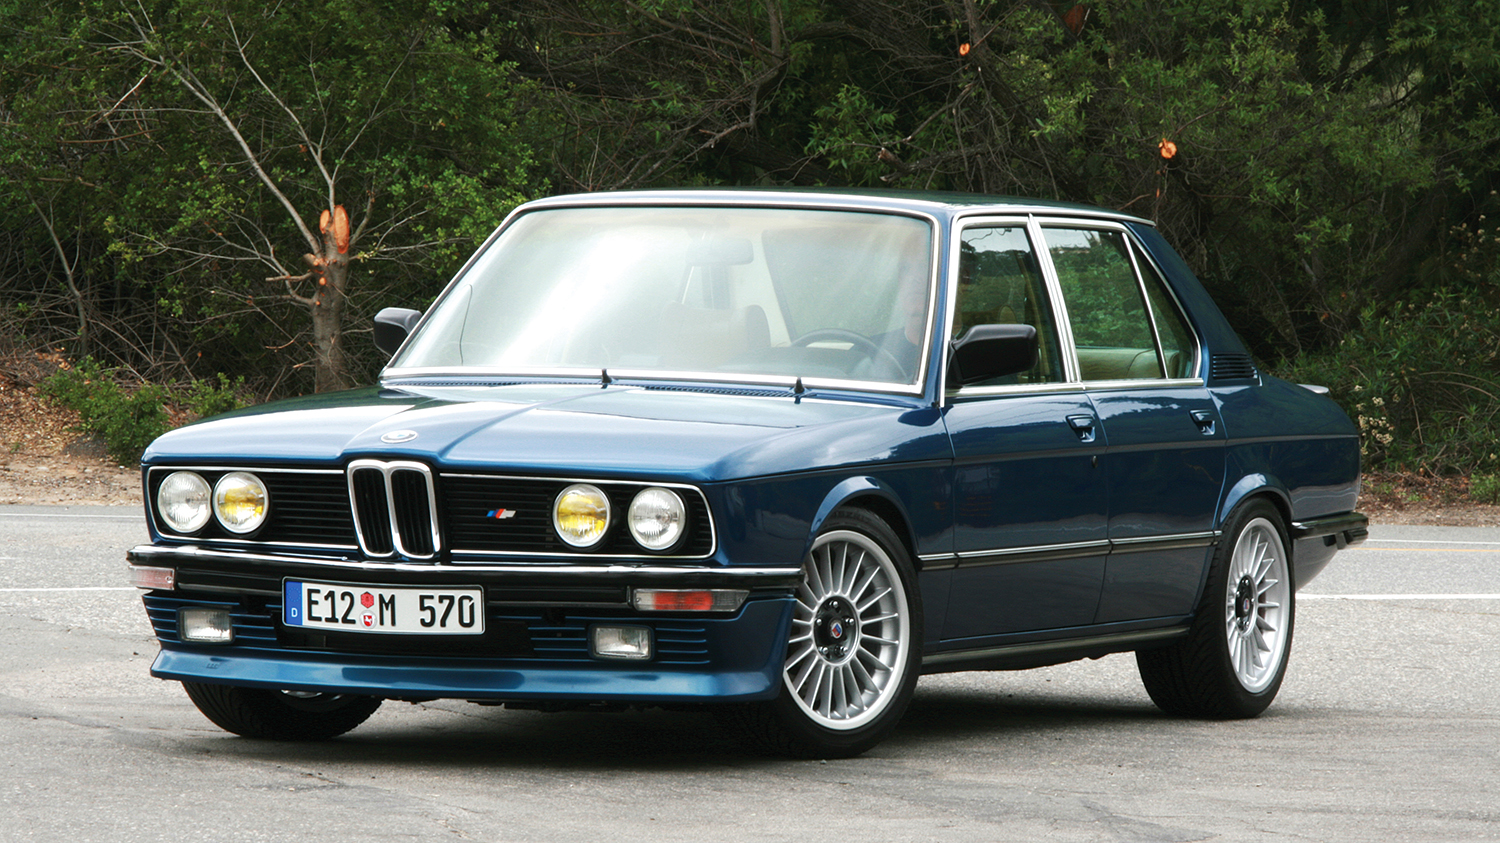 Rapid Transit Bmw Articles Grassroots Motorsports 5 Series E12 Meet An Early With A V8 Swap